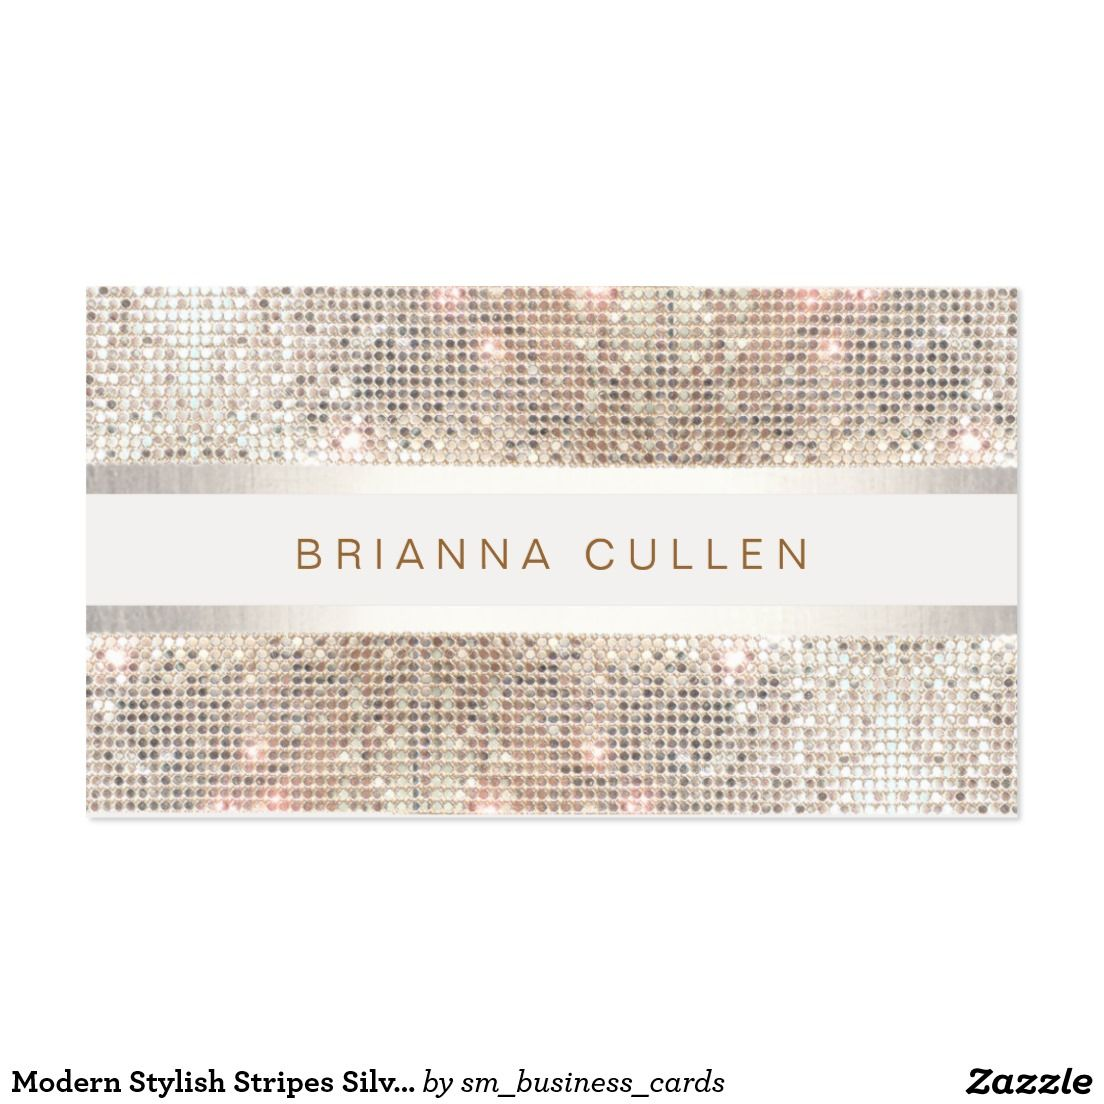 Modern stylish stripes silver sequin business card business cards modern stylish stripes silver sequin business card colourmoves